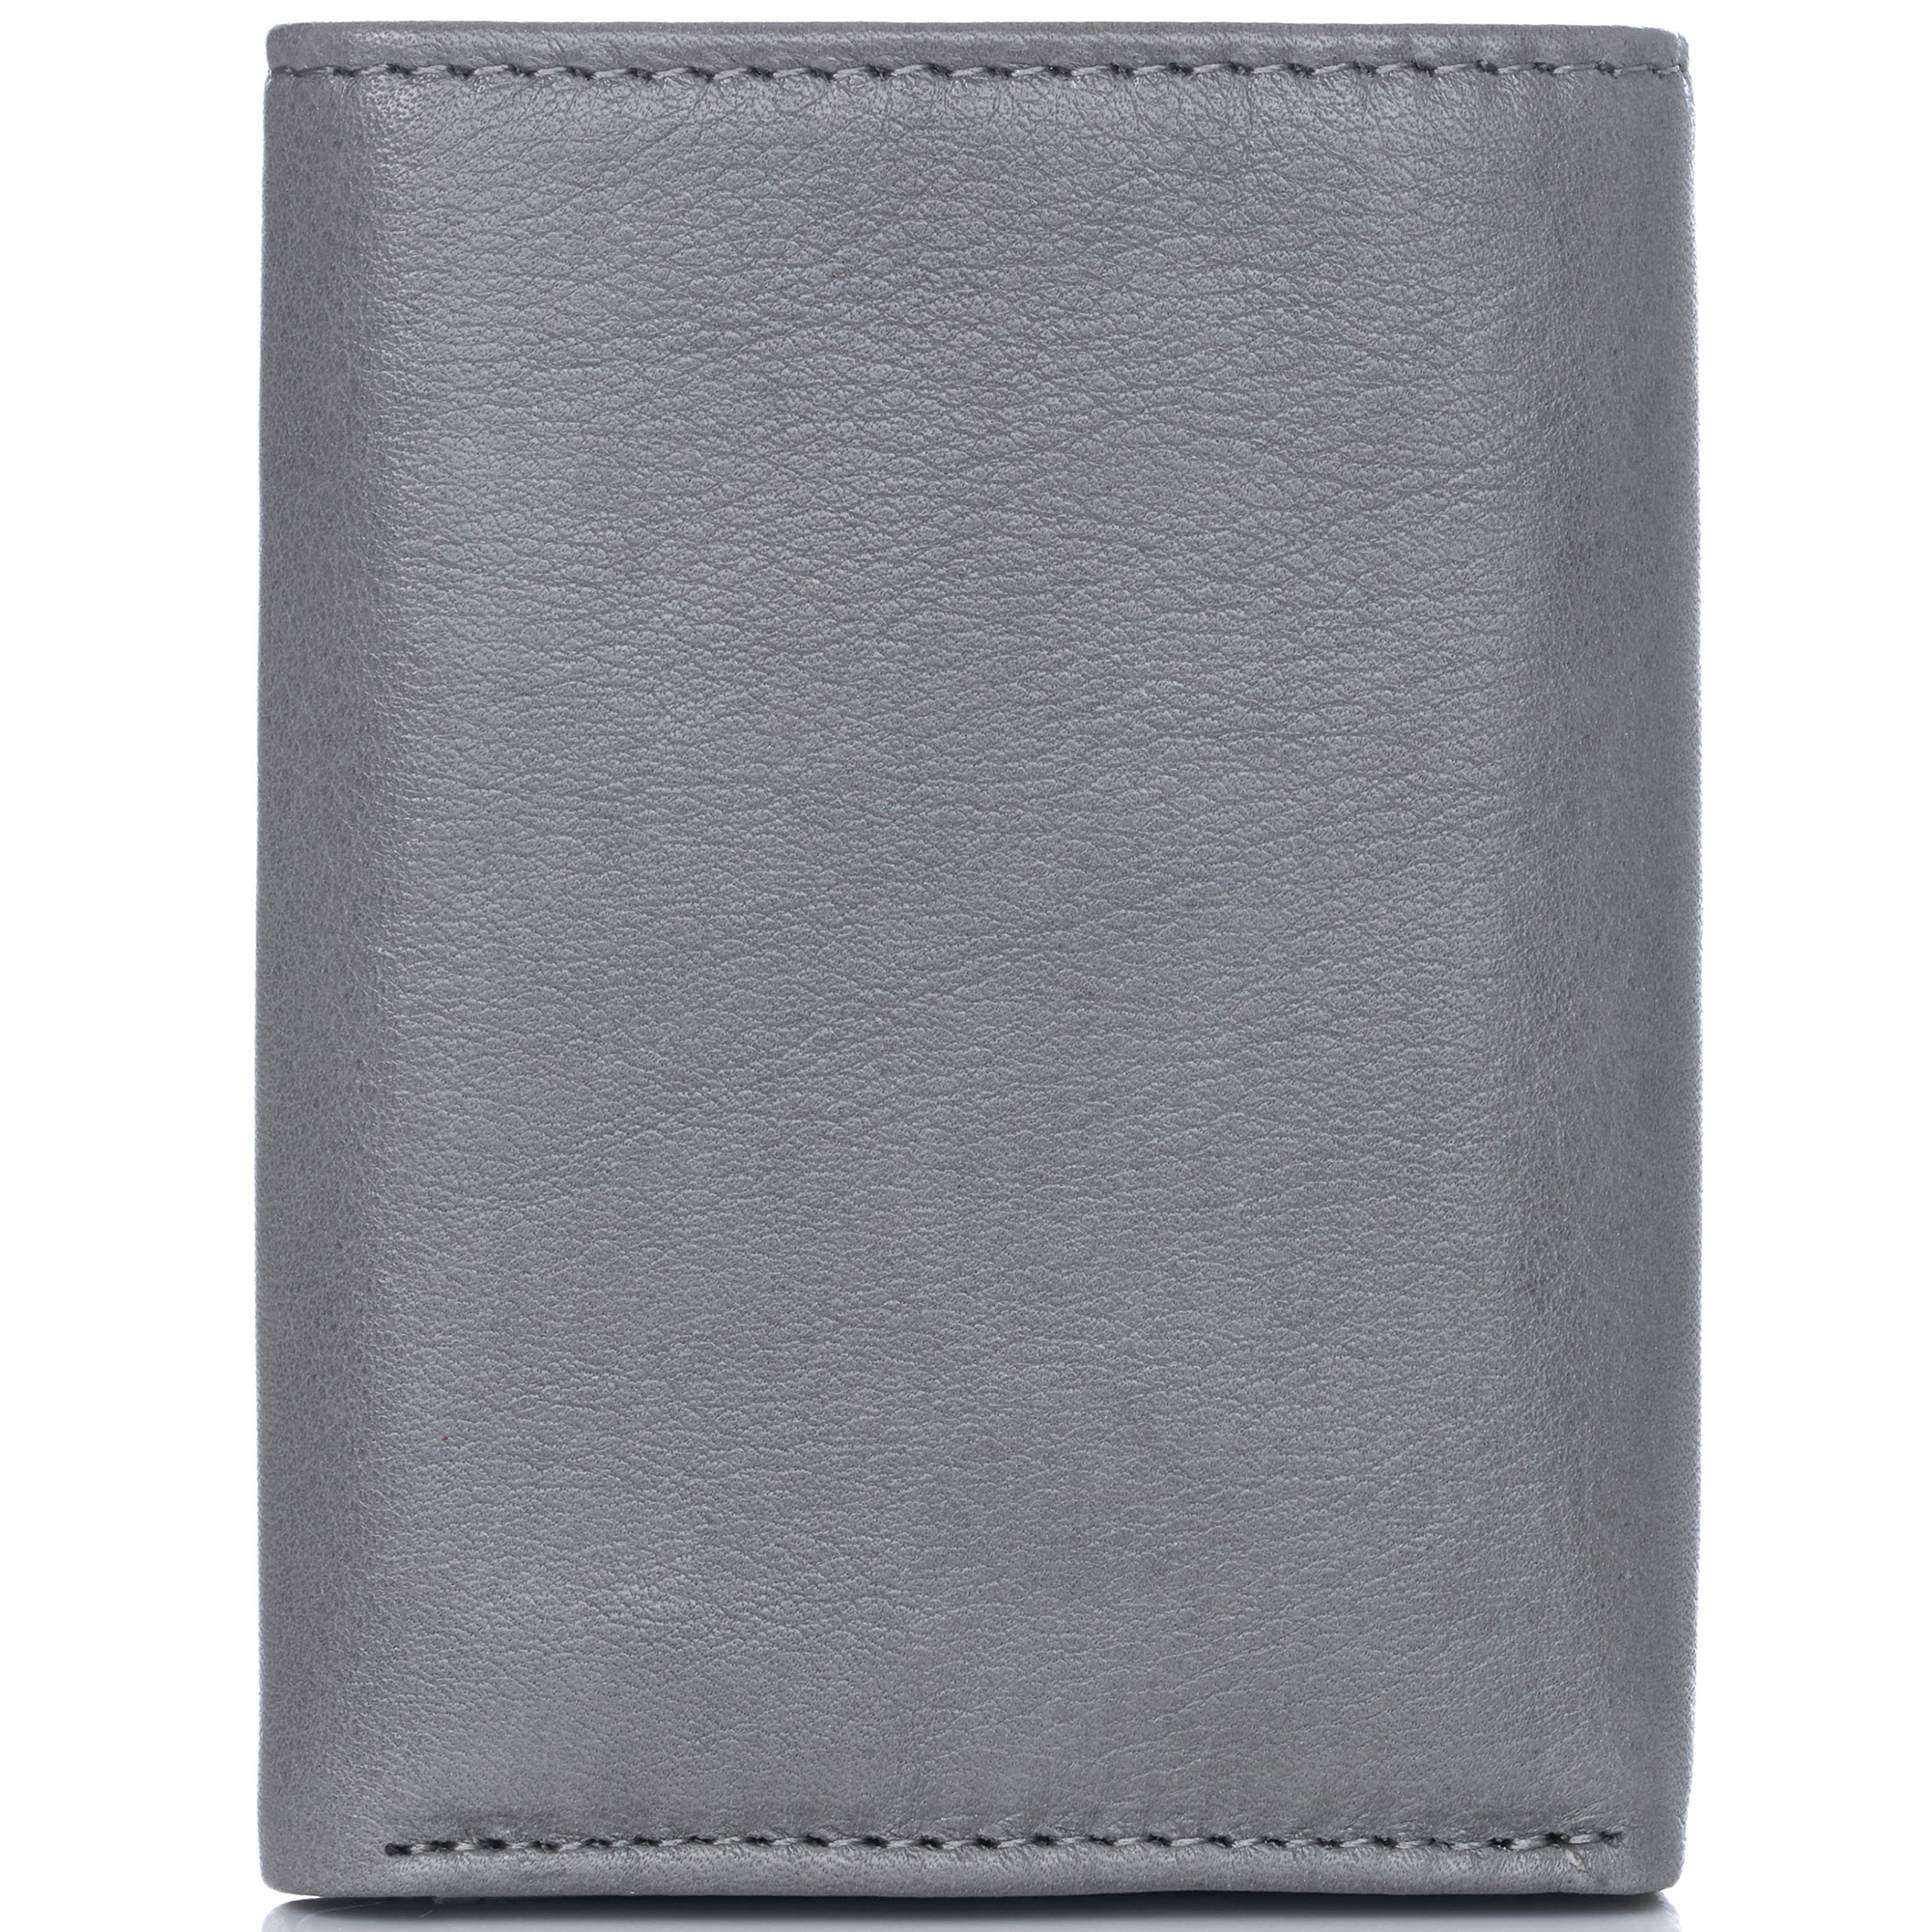 Alpine-Swiss-RFID-Mens-Wallet-Deluxe-Capacity-Trifold-With-Divided-Bill-Section thumbnail 106